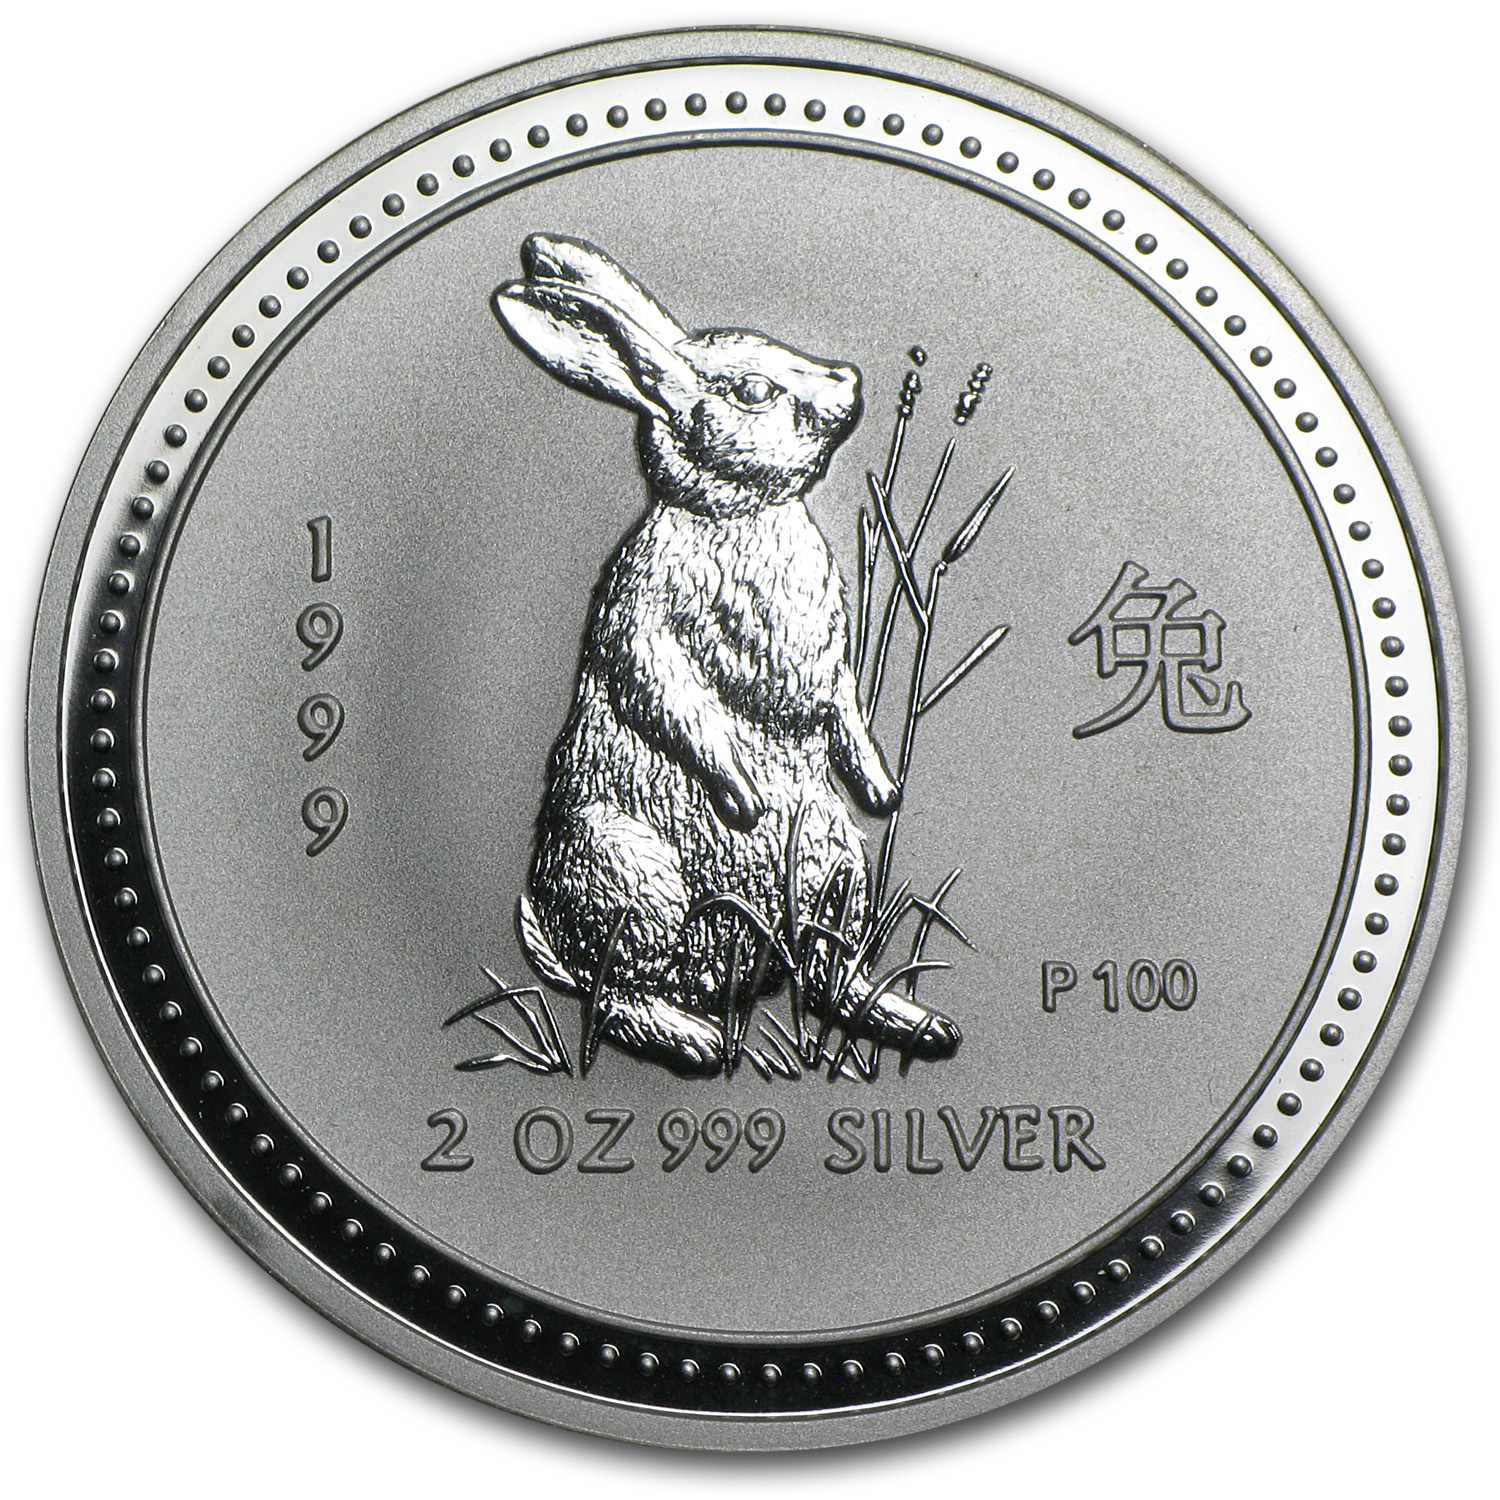 1999 Australia 2 oz Silver Year of the Rabbit BU